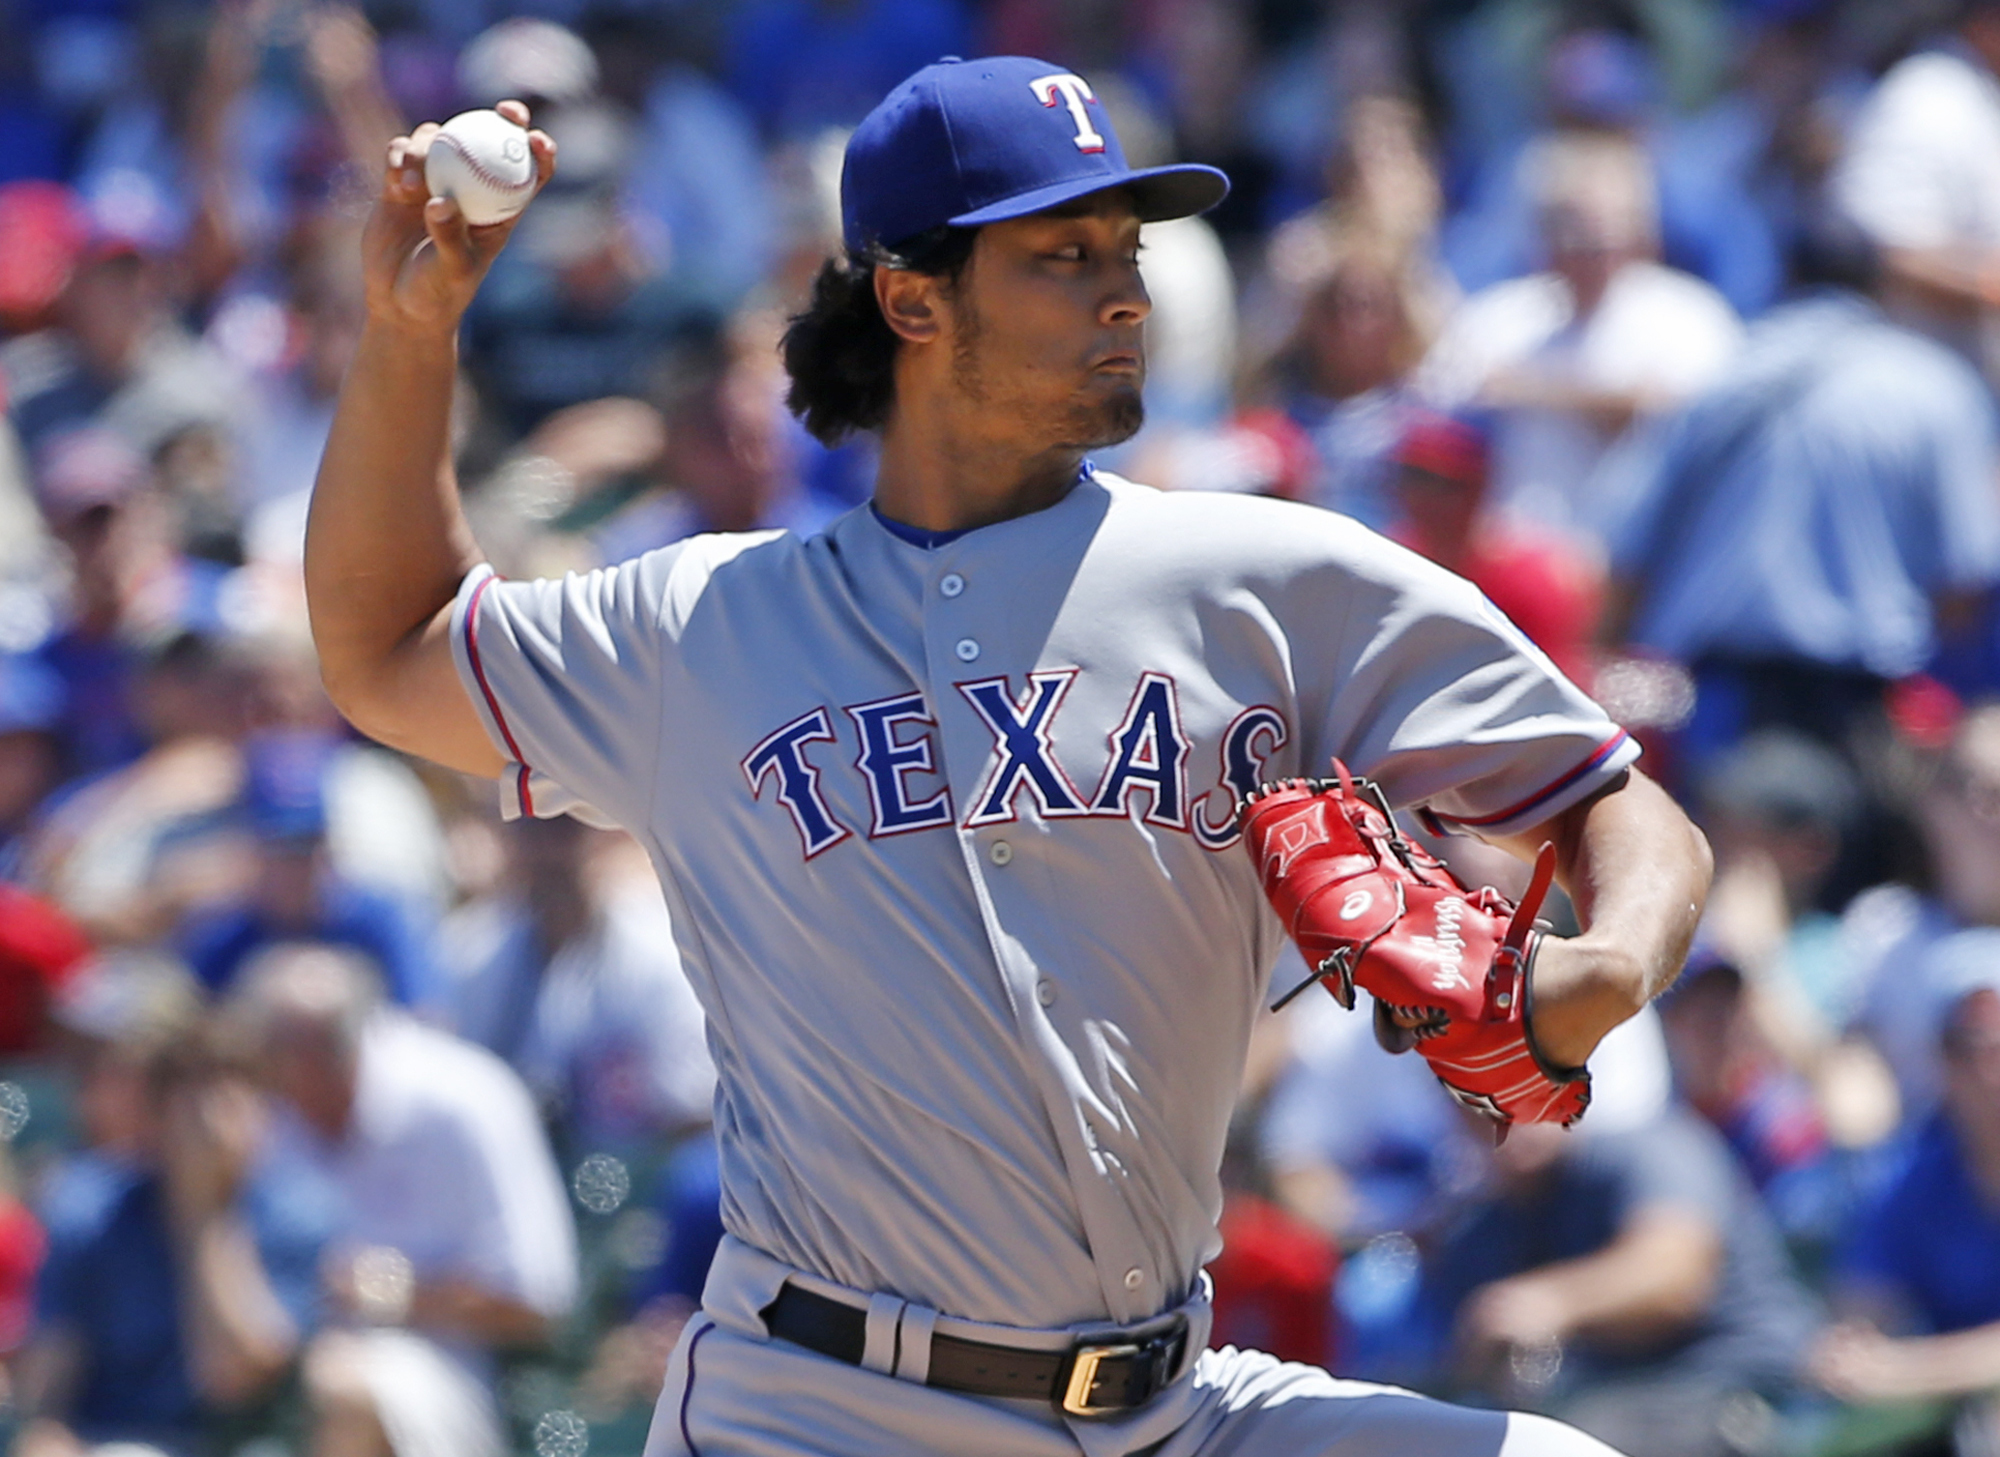 Texas Rangers starter Yu Darvish, of Japan, throws against the Chicago Cubs during the first inning of an interleague baseball game in Chicago, Saturday, July 16, 2016. (AP Photo/Nam Y. Huh)